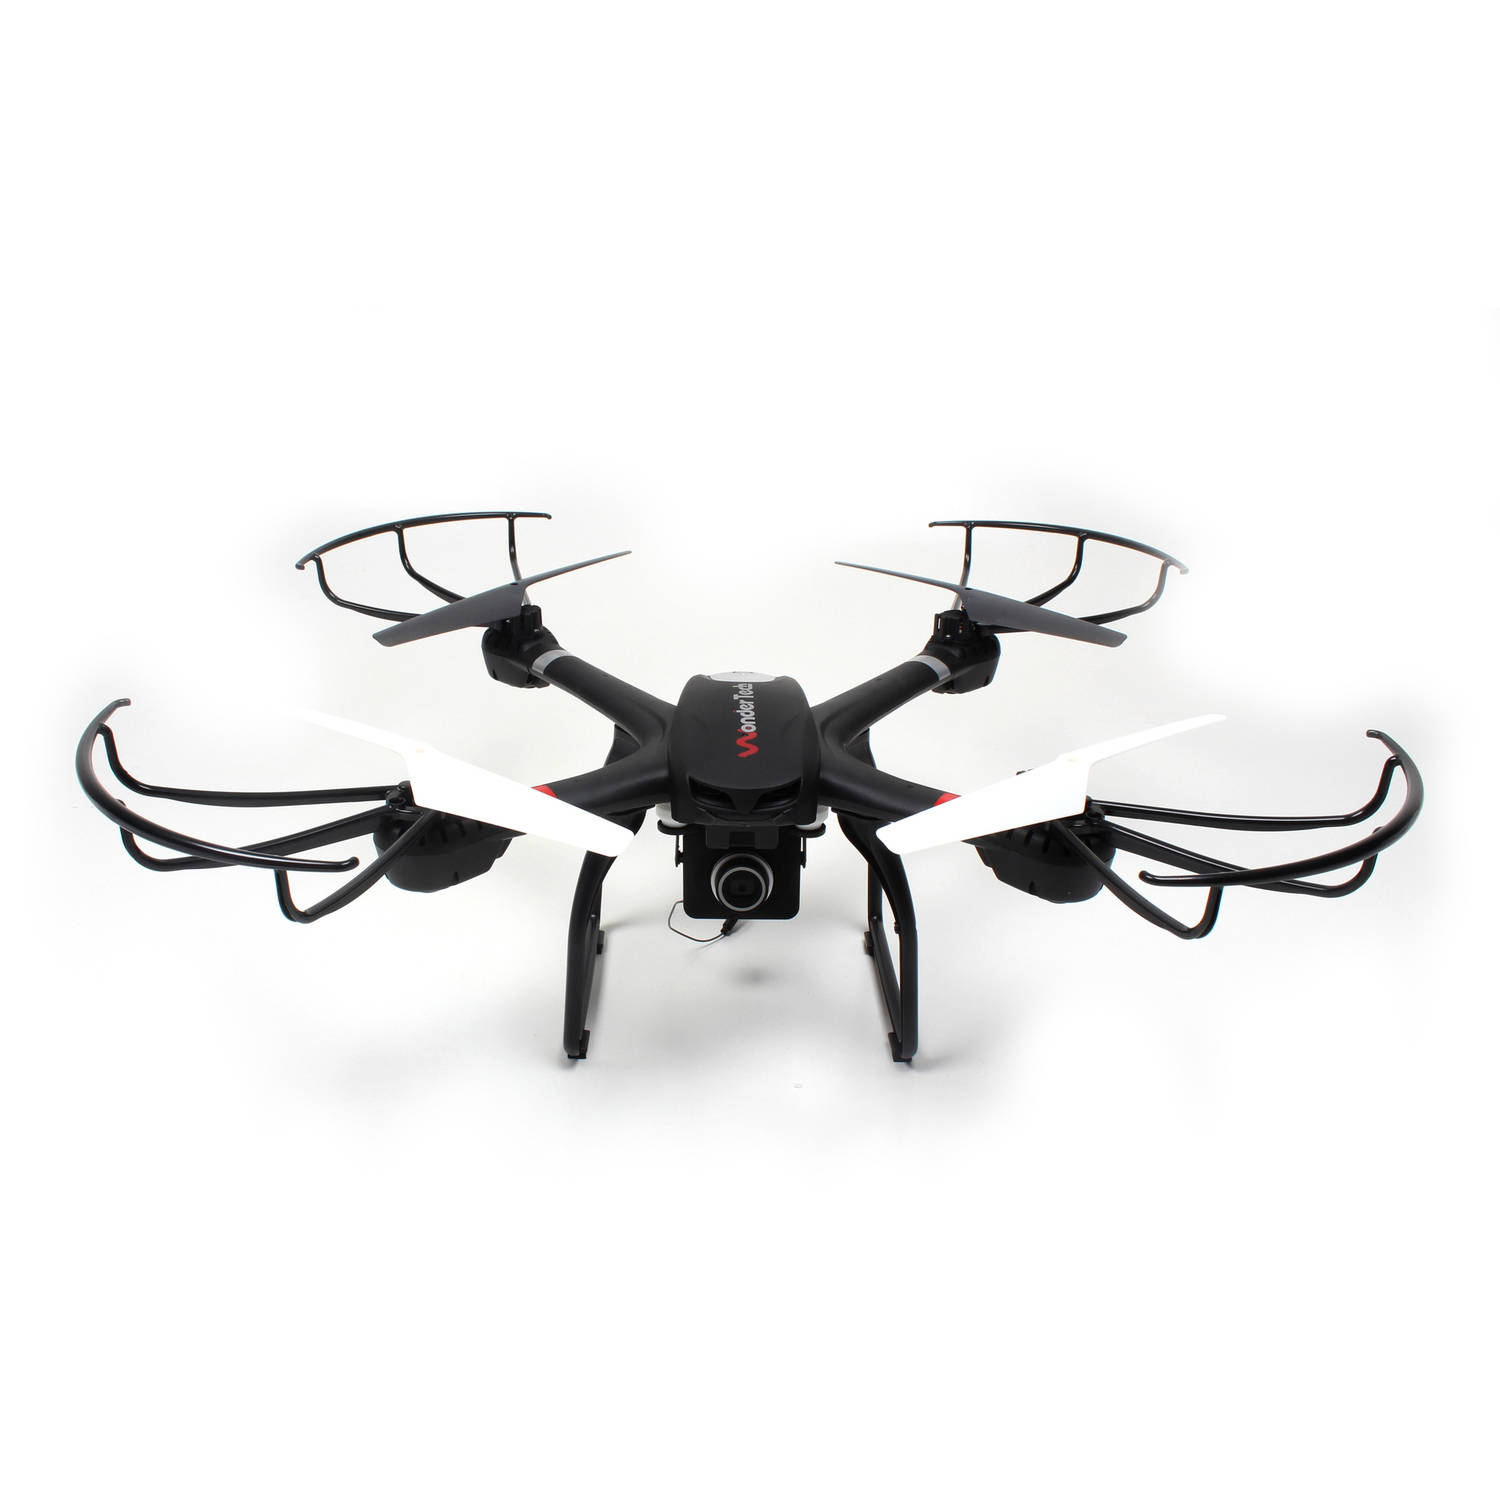 WonderTech Voyager 2.4GHz 6-Axis Gyro Drone Quadcopter with HD FPV Real Time Live Video Feed Camera, Black